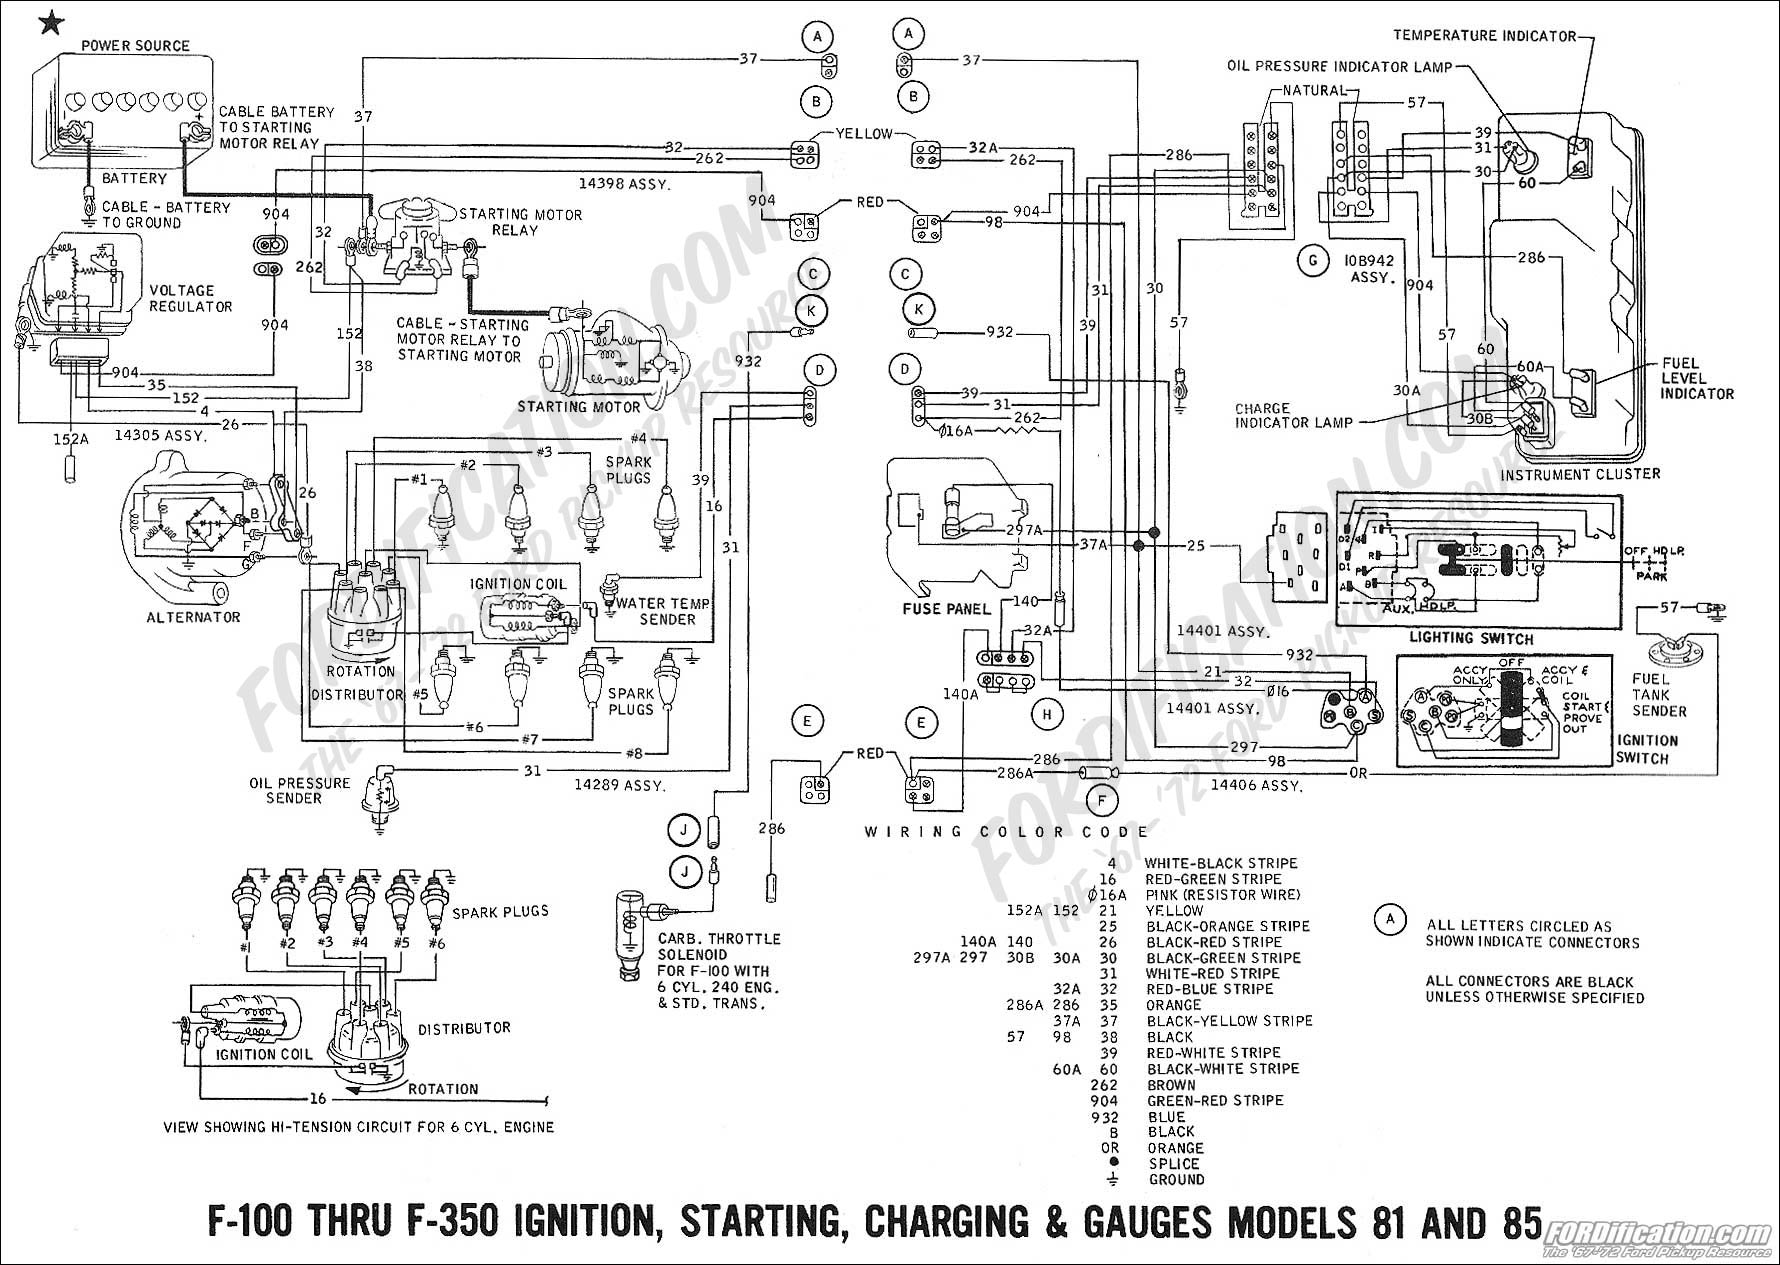 1971 ford f 250 ignition wiring schematic - wiring diagram base style -  style.jabstudio.it  jab studio